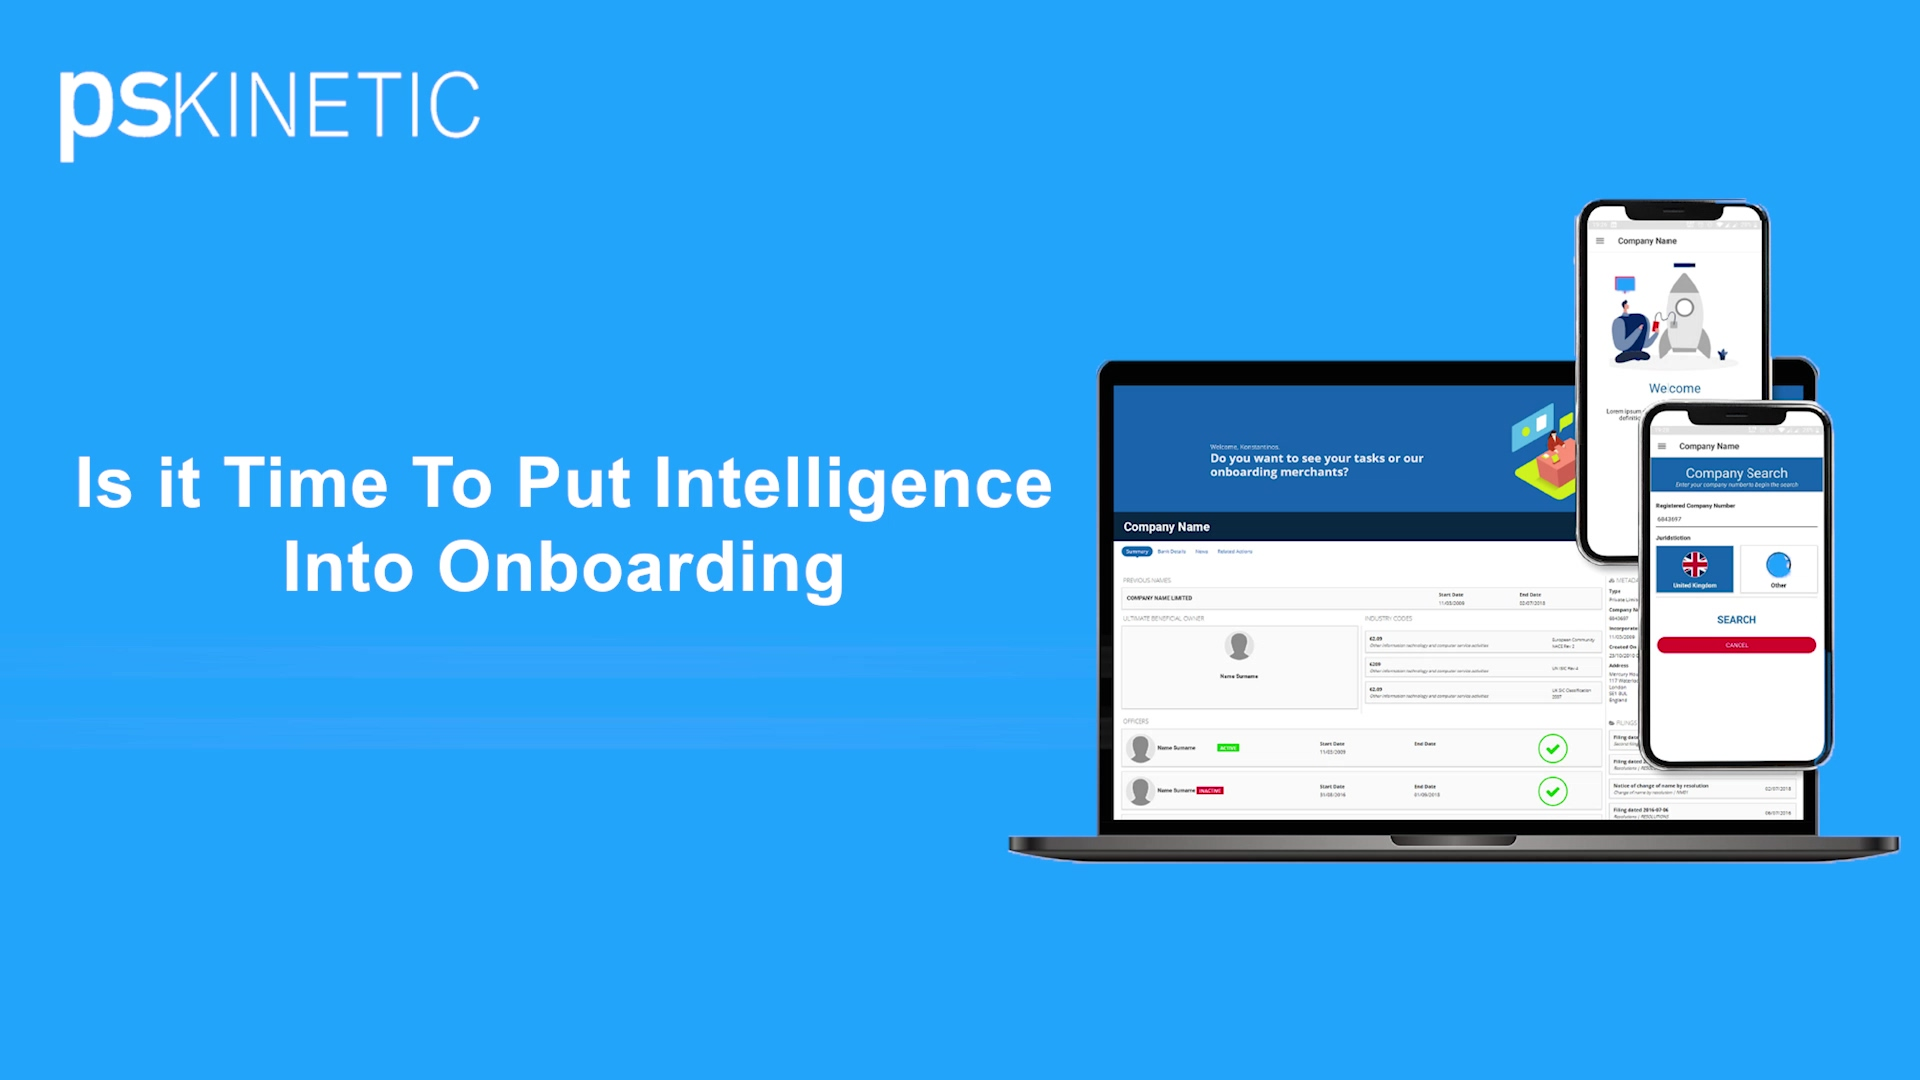 Its Time To Put Intelligence Into Onboarding